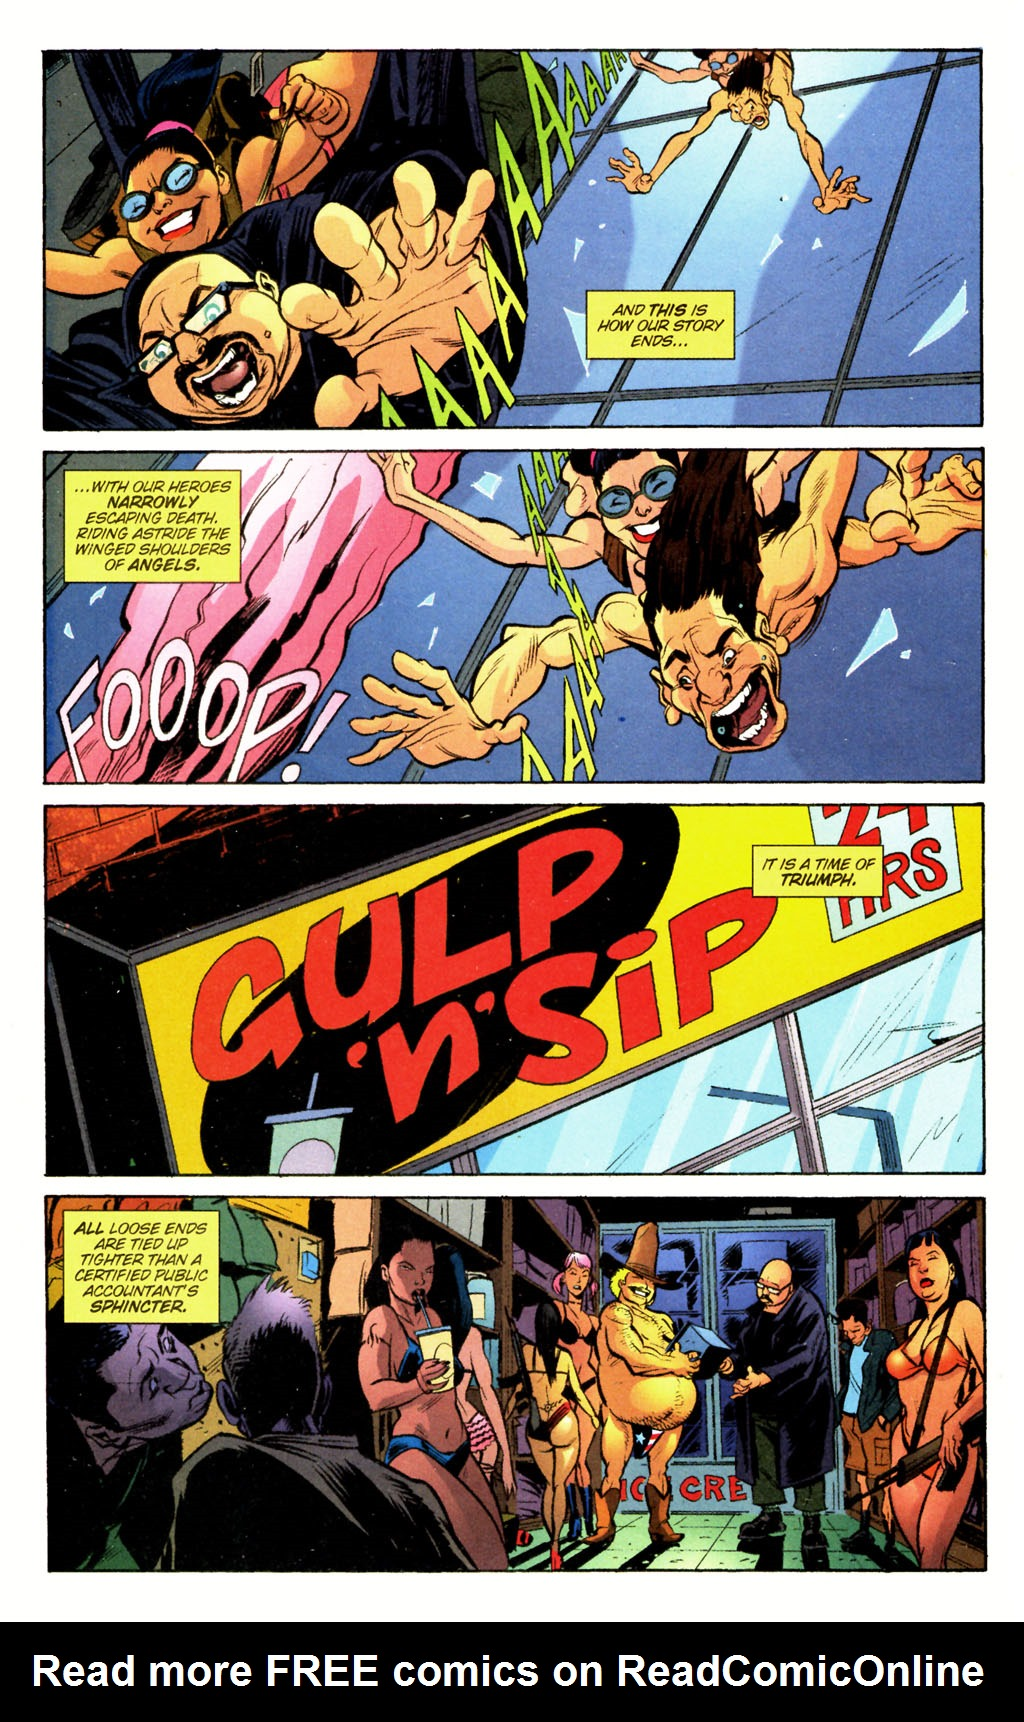 Read online Caper comic -  Issue #12 - 21